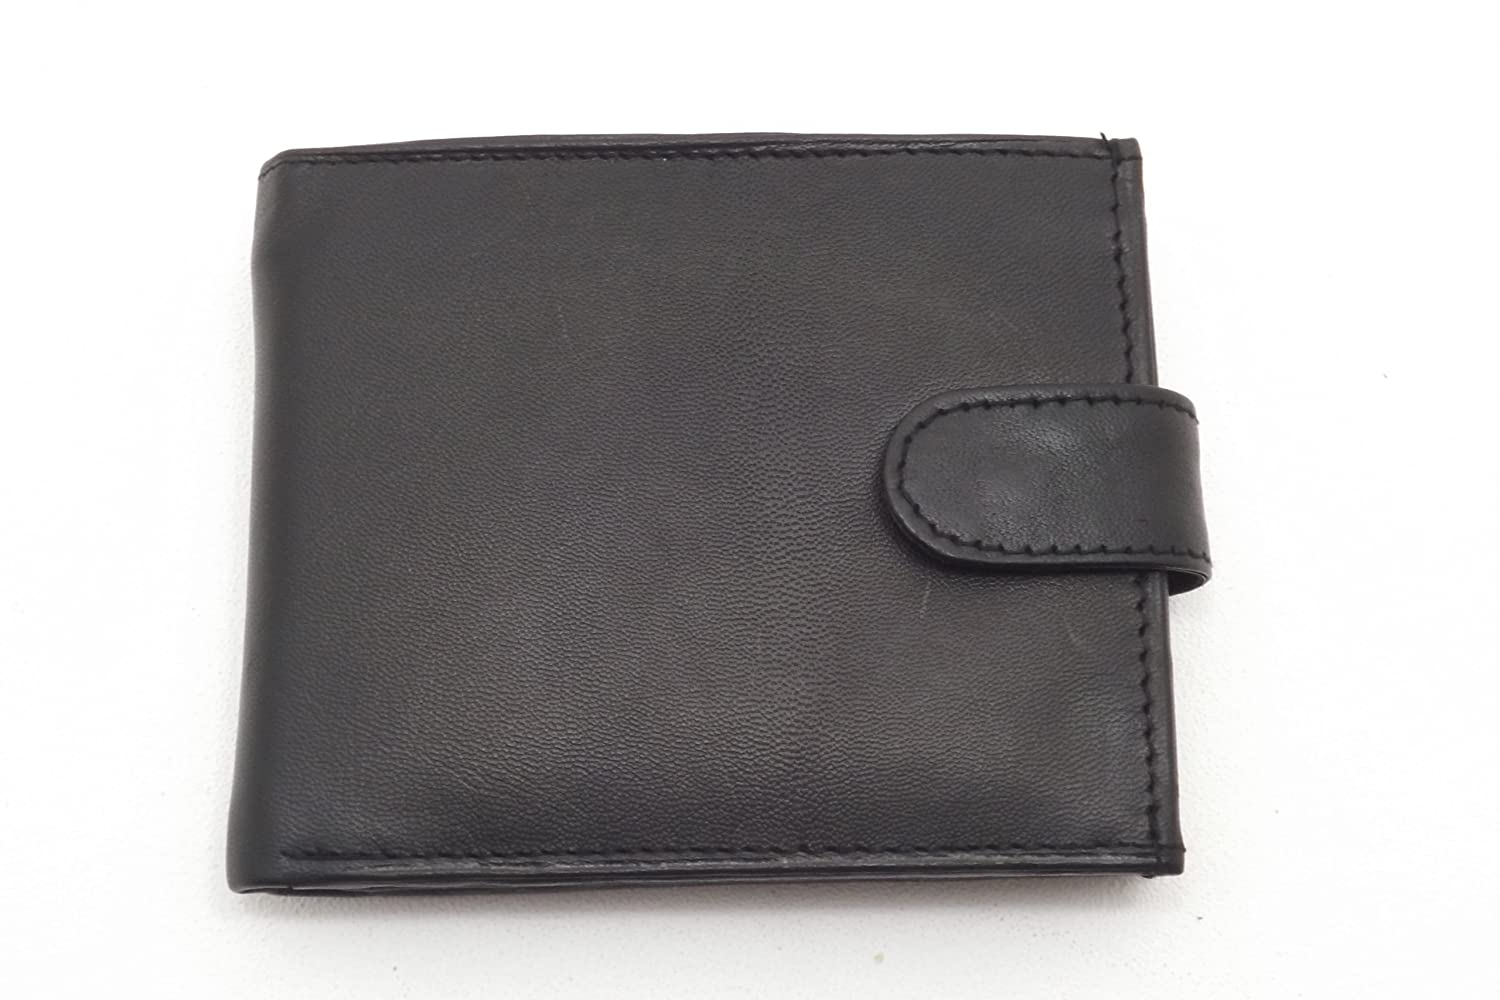 Mens New High Quality Luxury Soft Leather Wallet - Amazing Gift for him